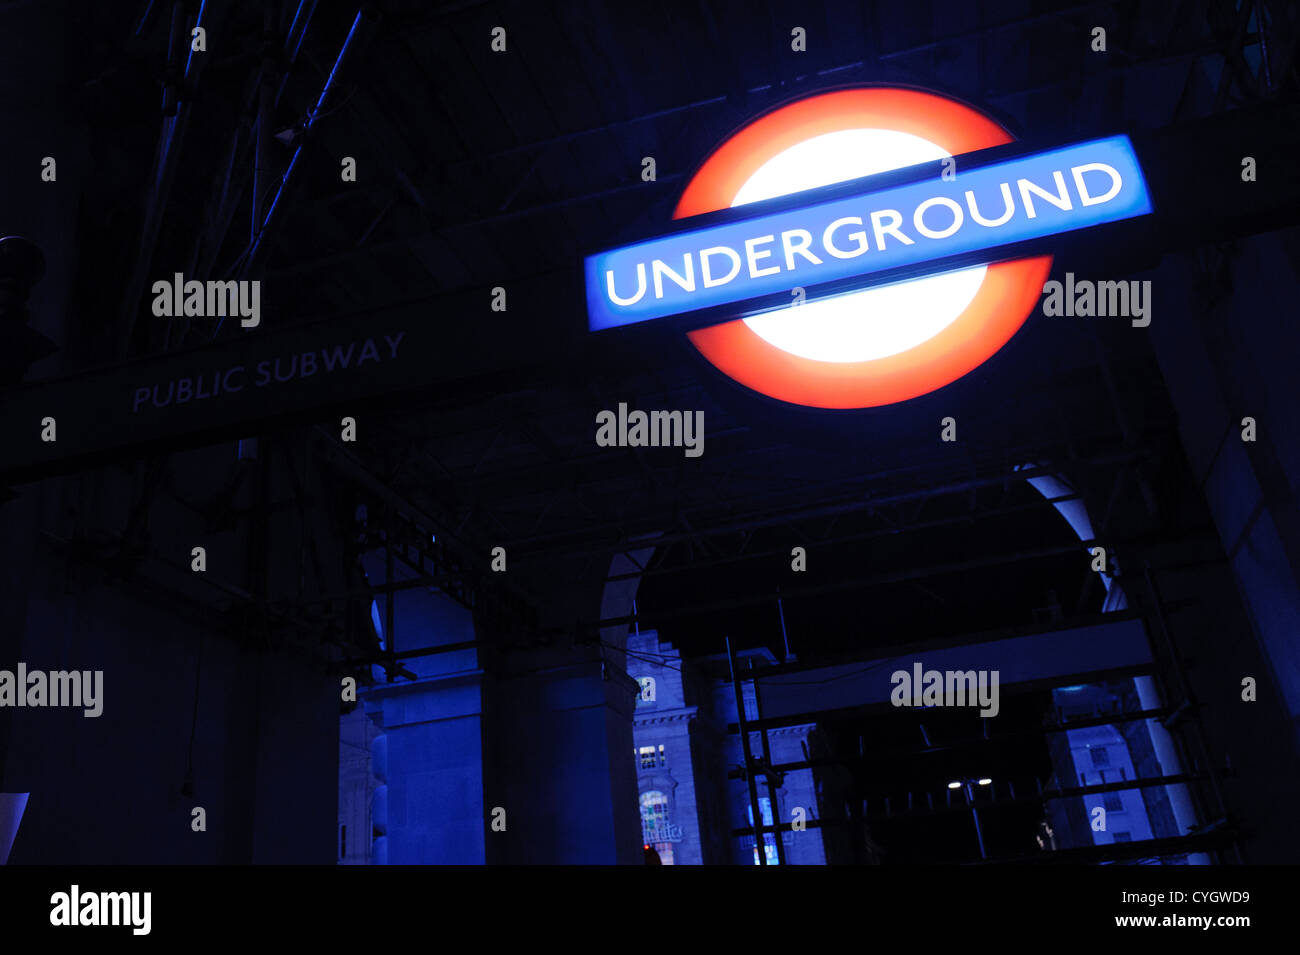 London underground sign at night - Stock Image